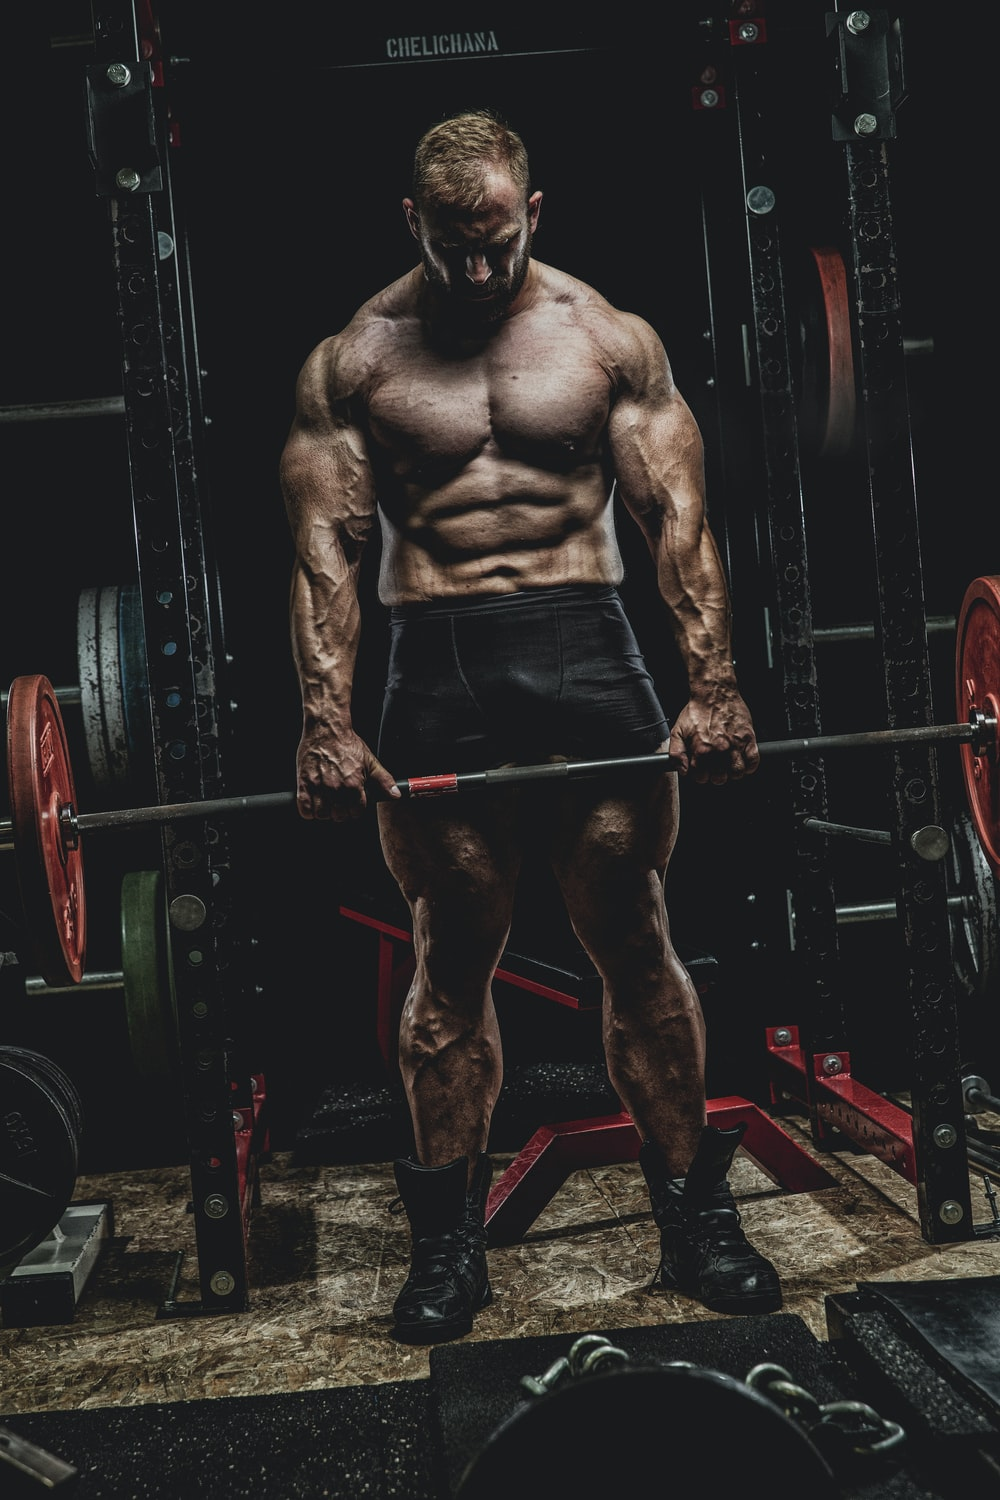 topless man in black shorts standing on black and red exercise equipment